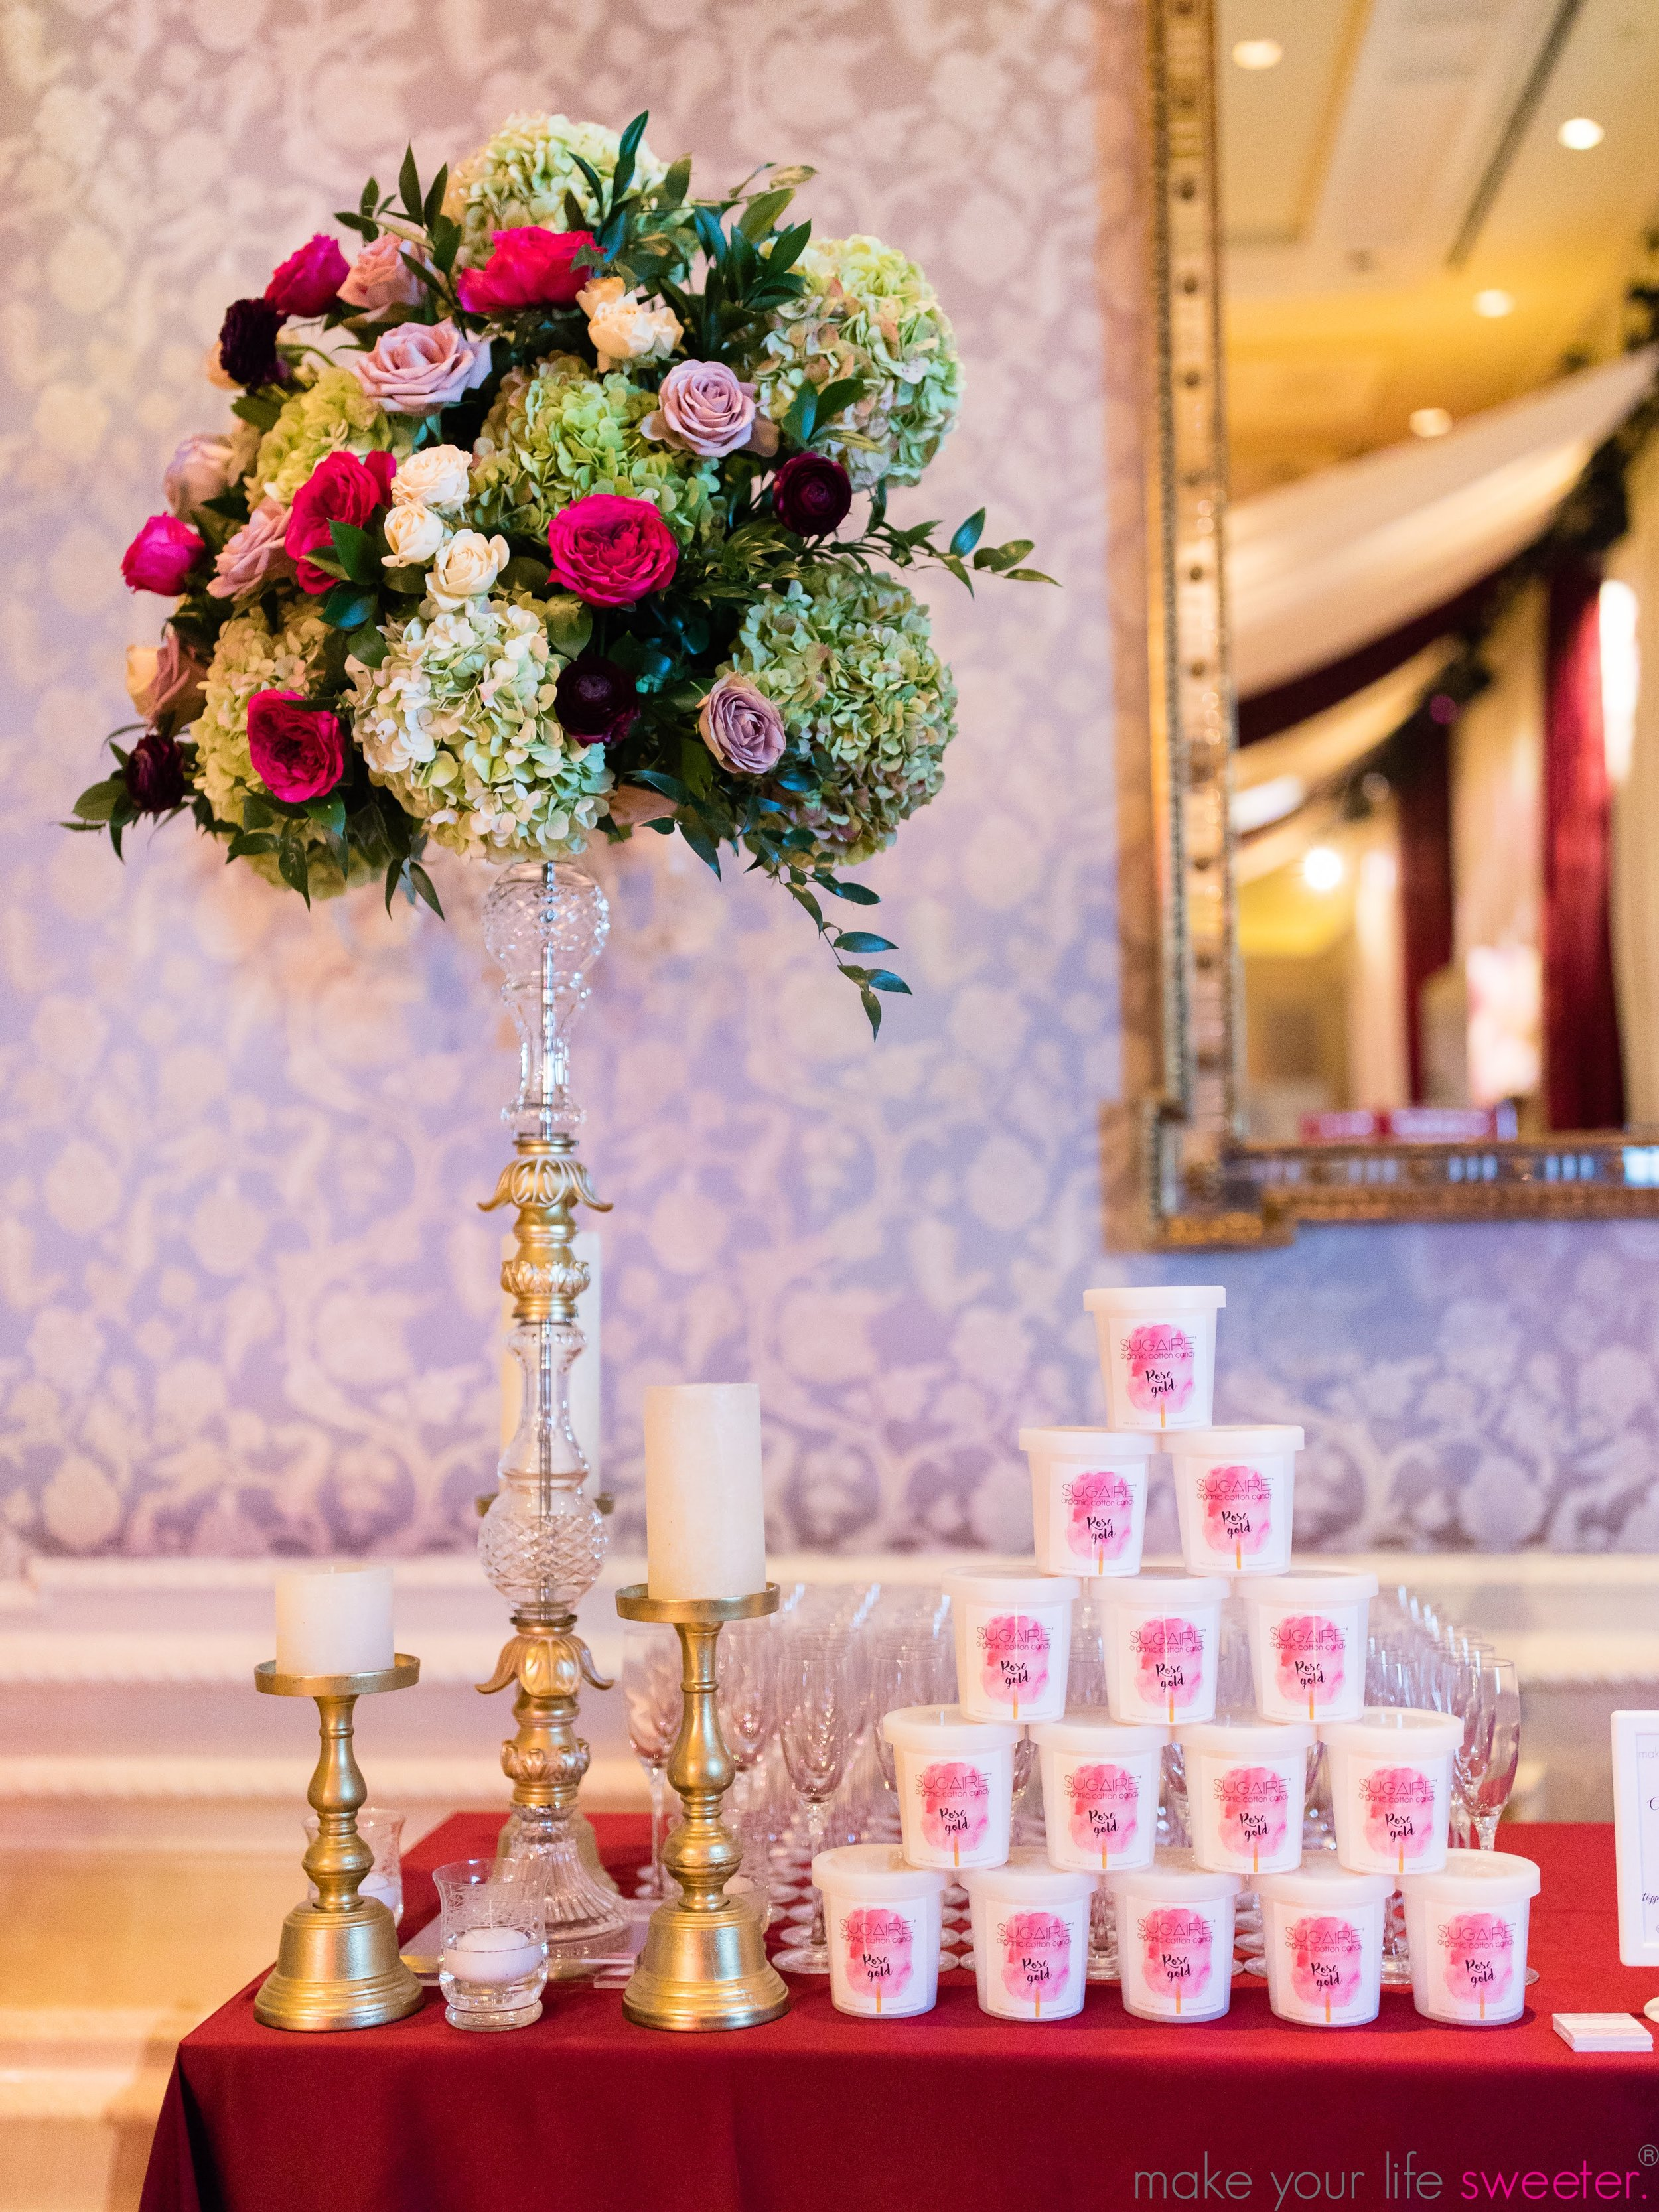 Make Your Life Sweeter Events - The Breakers Resort - Sugaire Organic Cotton Candy